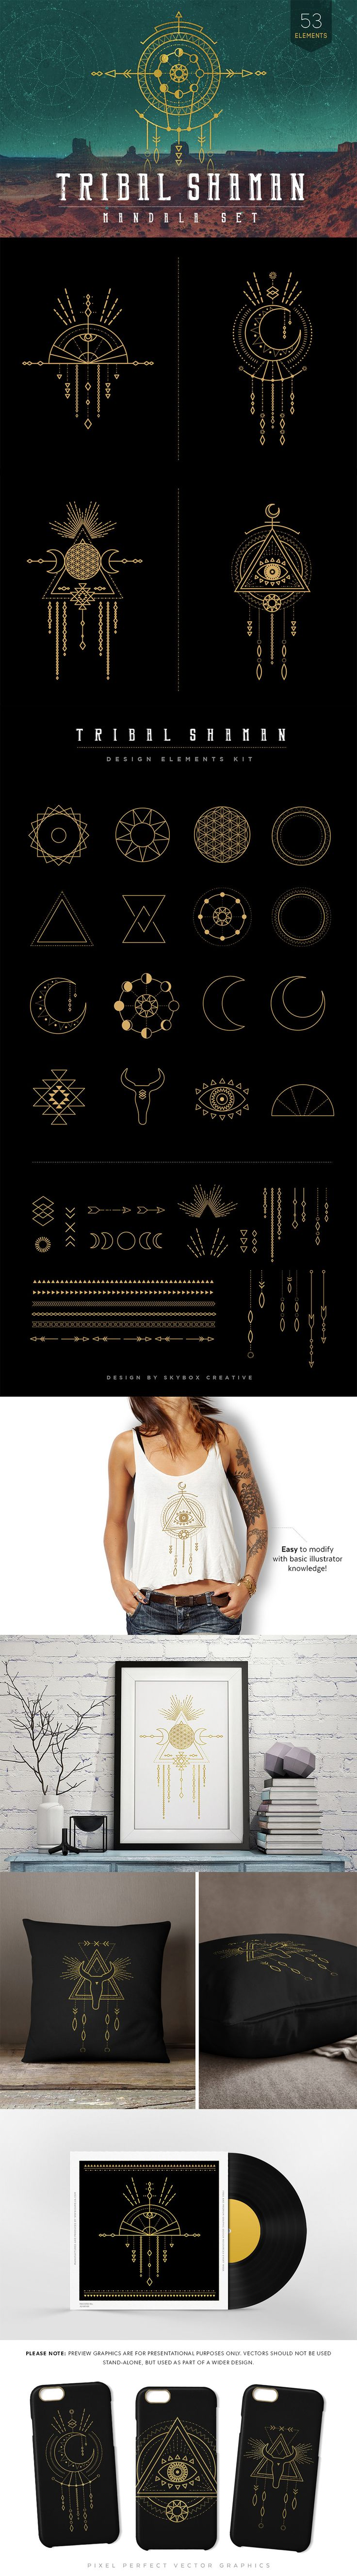 The Essential Hand-Made Vectors Collection   -   https://www.designcuts.com/product/the-essential-hand-made-vectors-collection/